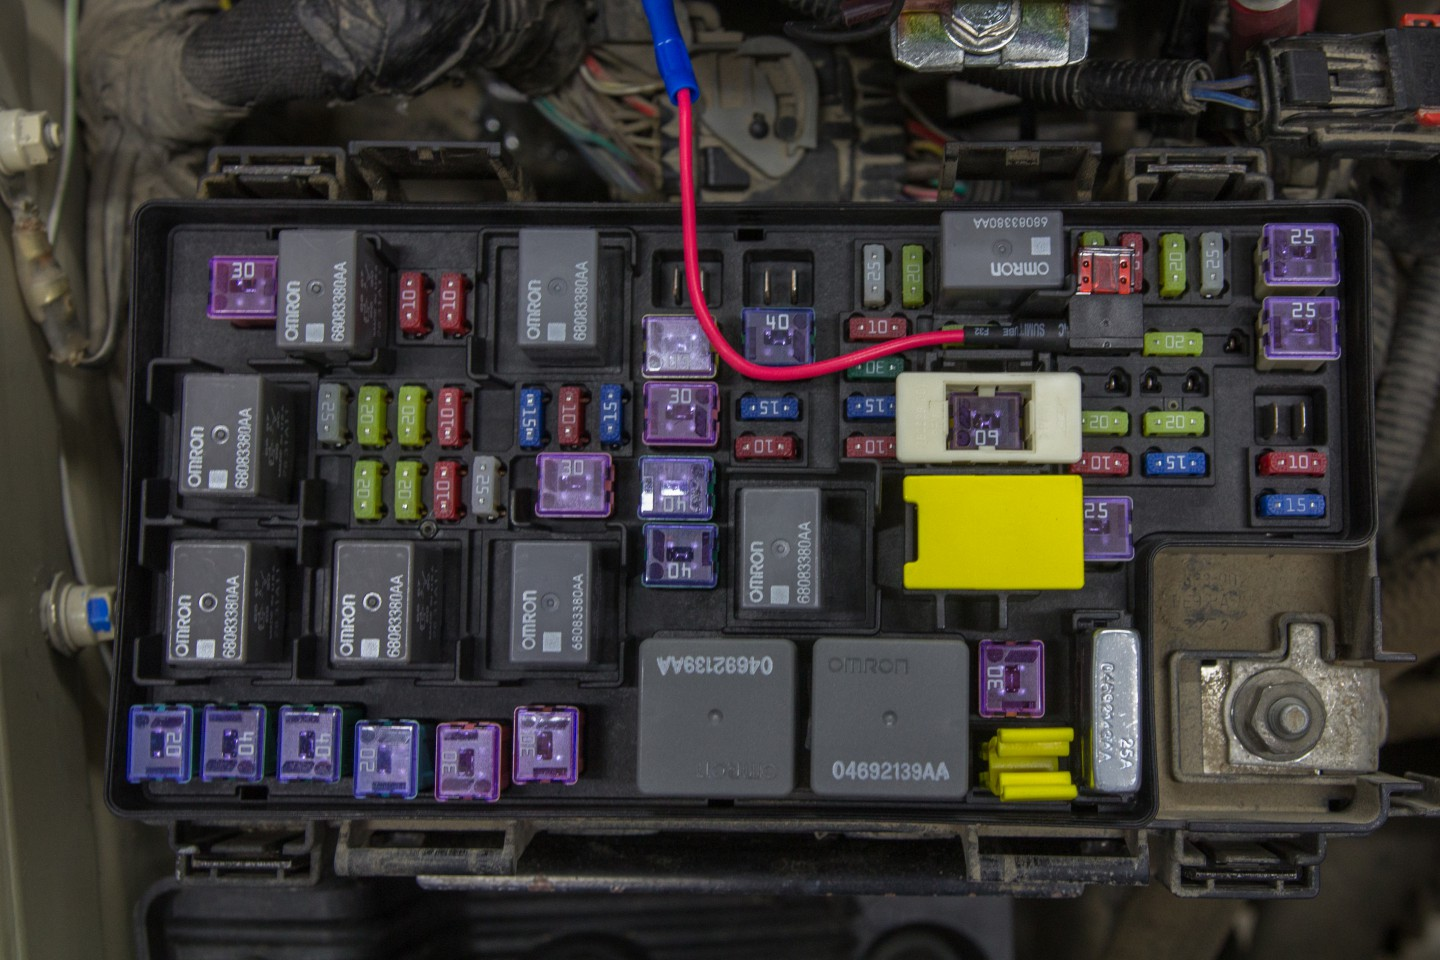 Diy Jeep Wrangler Jk Isolated Dual Batteries The Road Chose Me Car Fuse Box Purpose Mini Add A Circuit Holder In